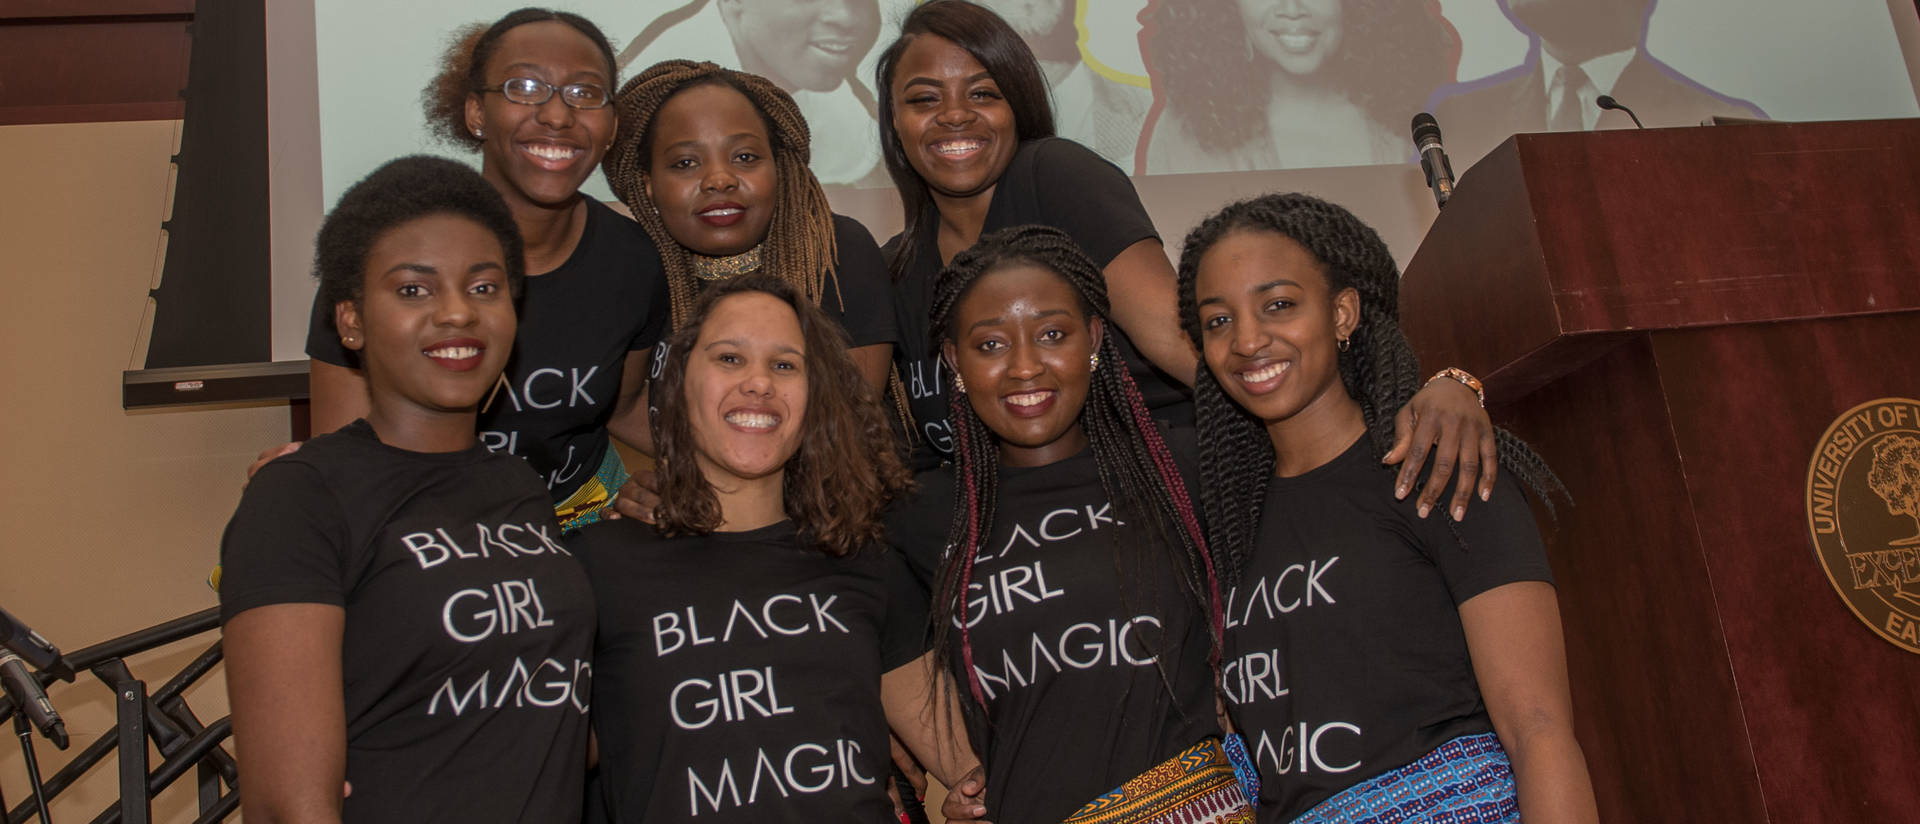 Black Girl Magic group at Black History Month dinner